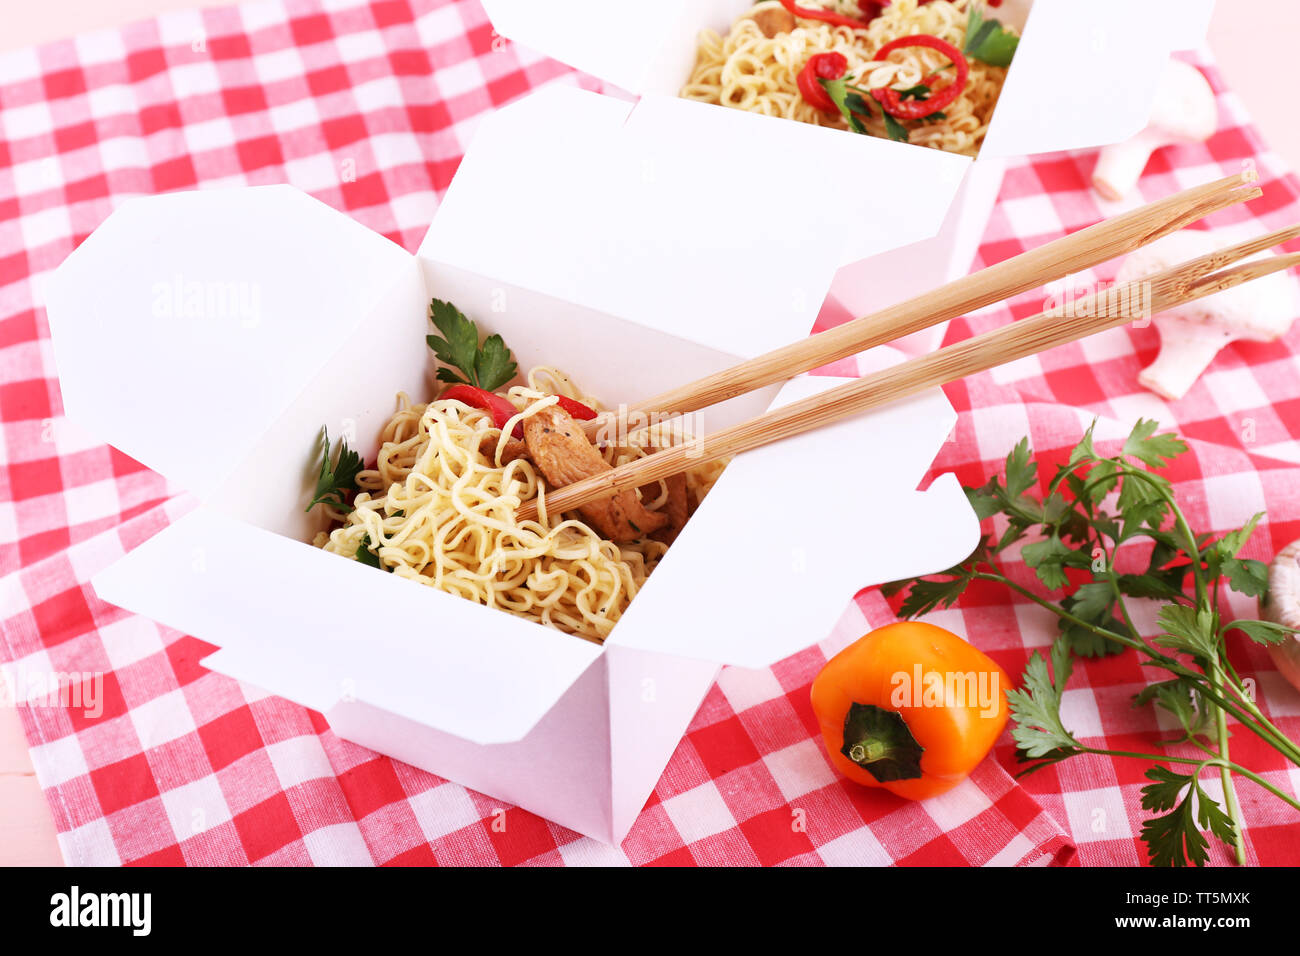 Chinese noodles and sticks in takeaway boxes on fabric background - Stock Image